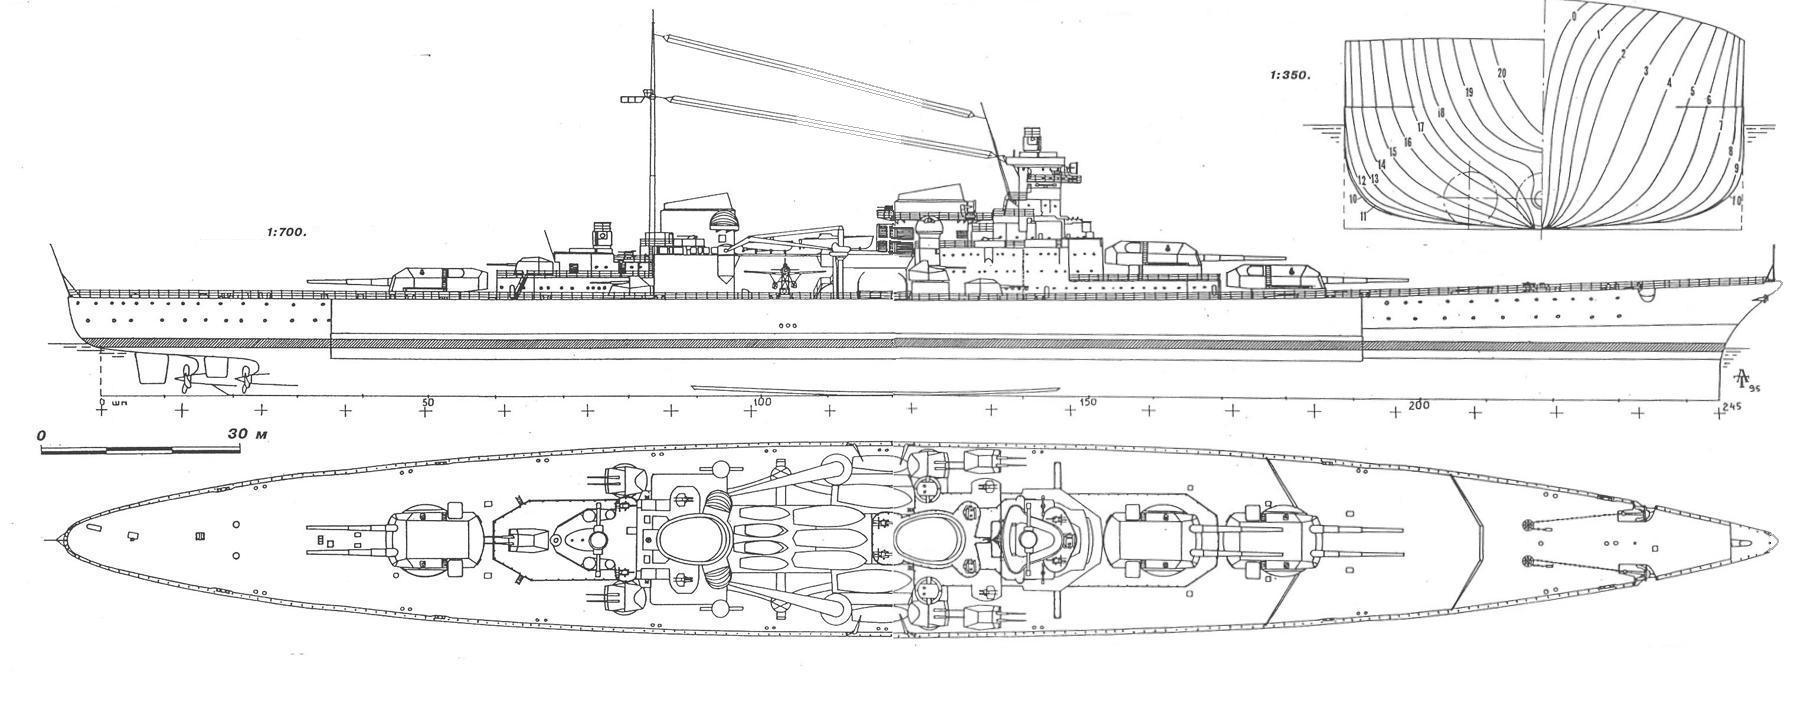 HD version of the design upgraded to the 38 cm caliber turrets